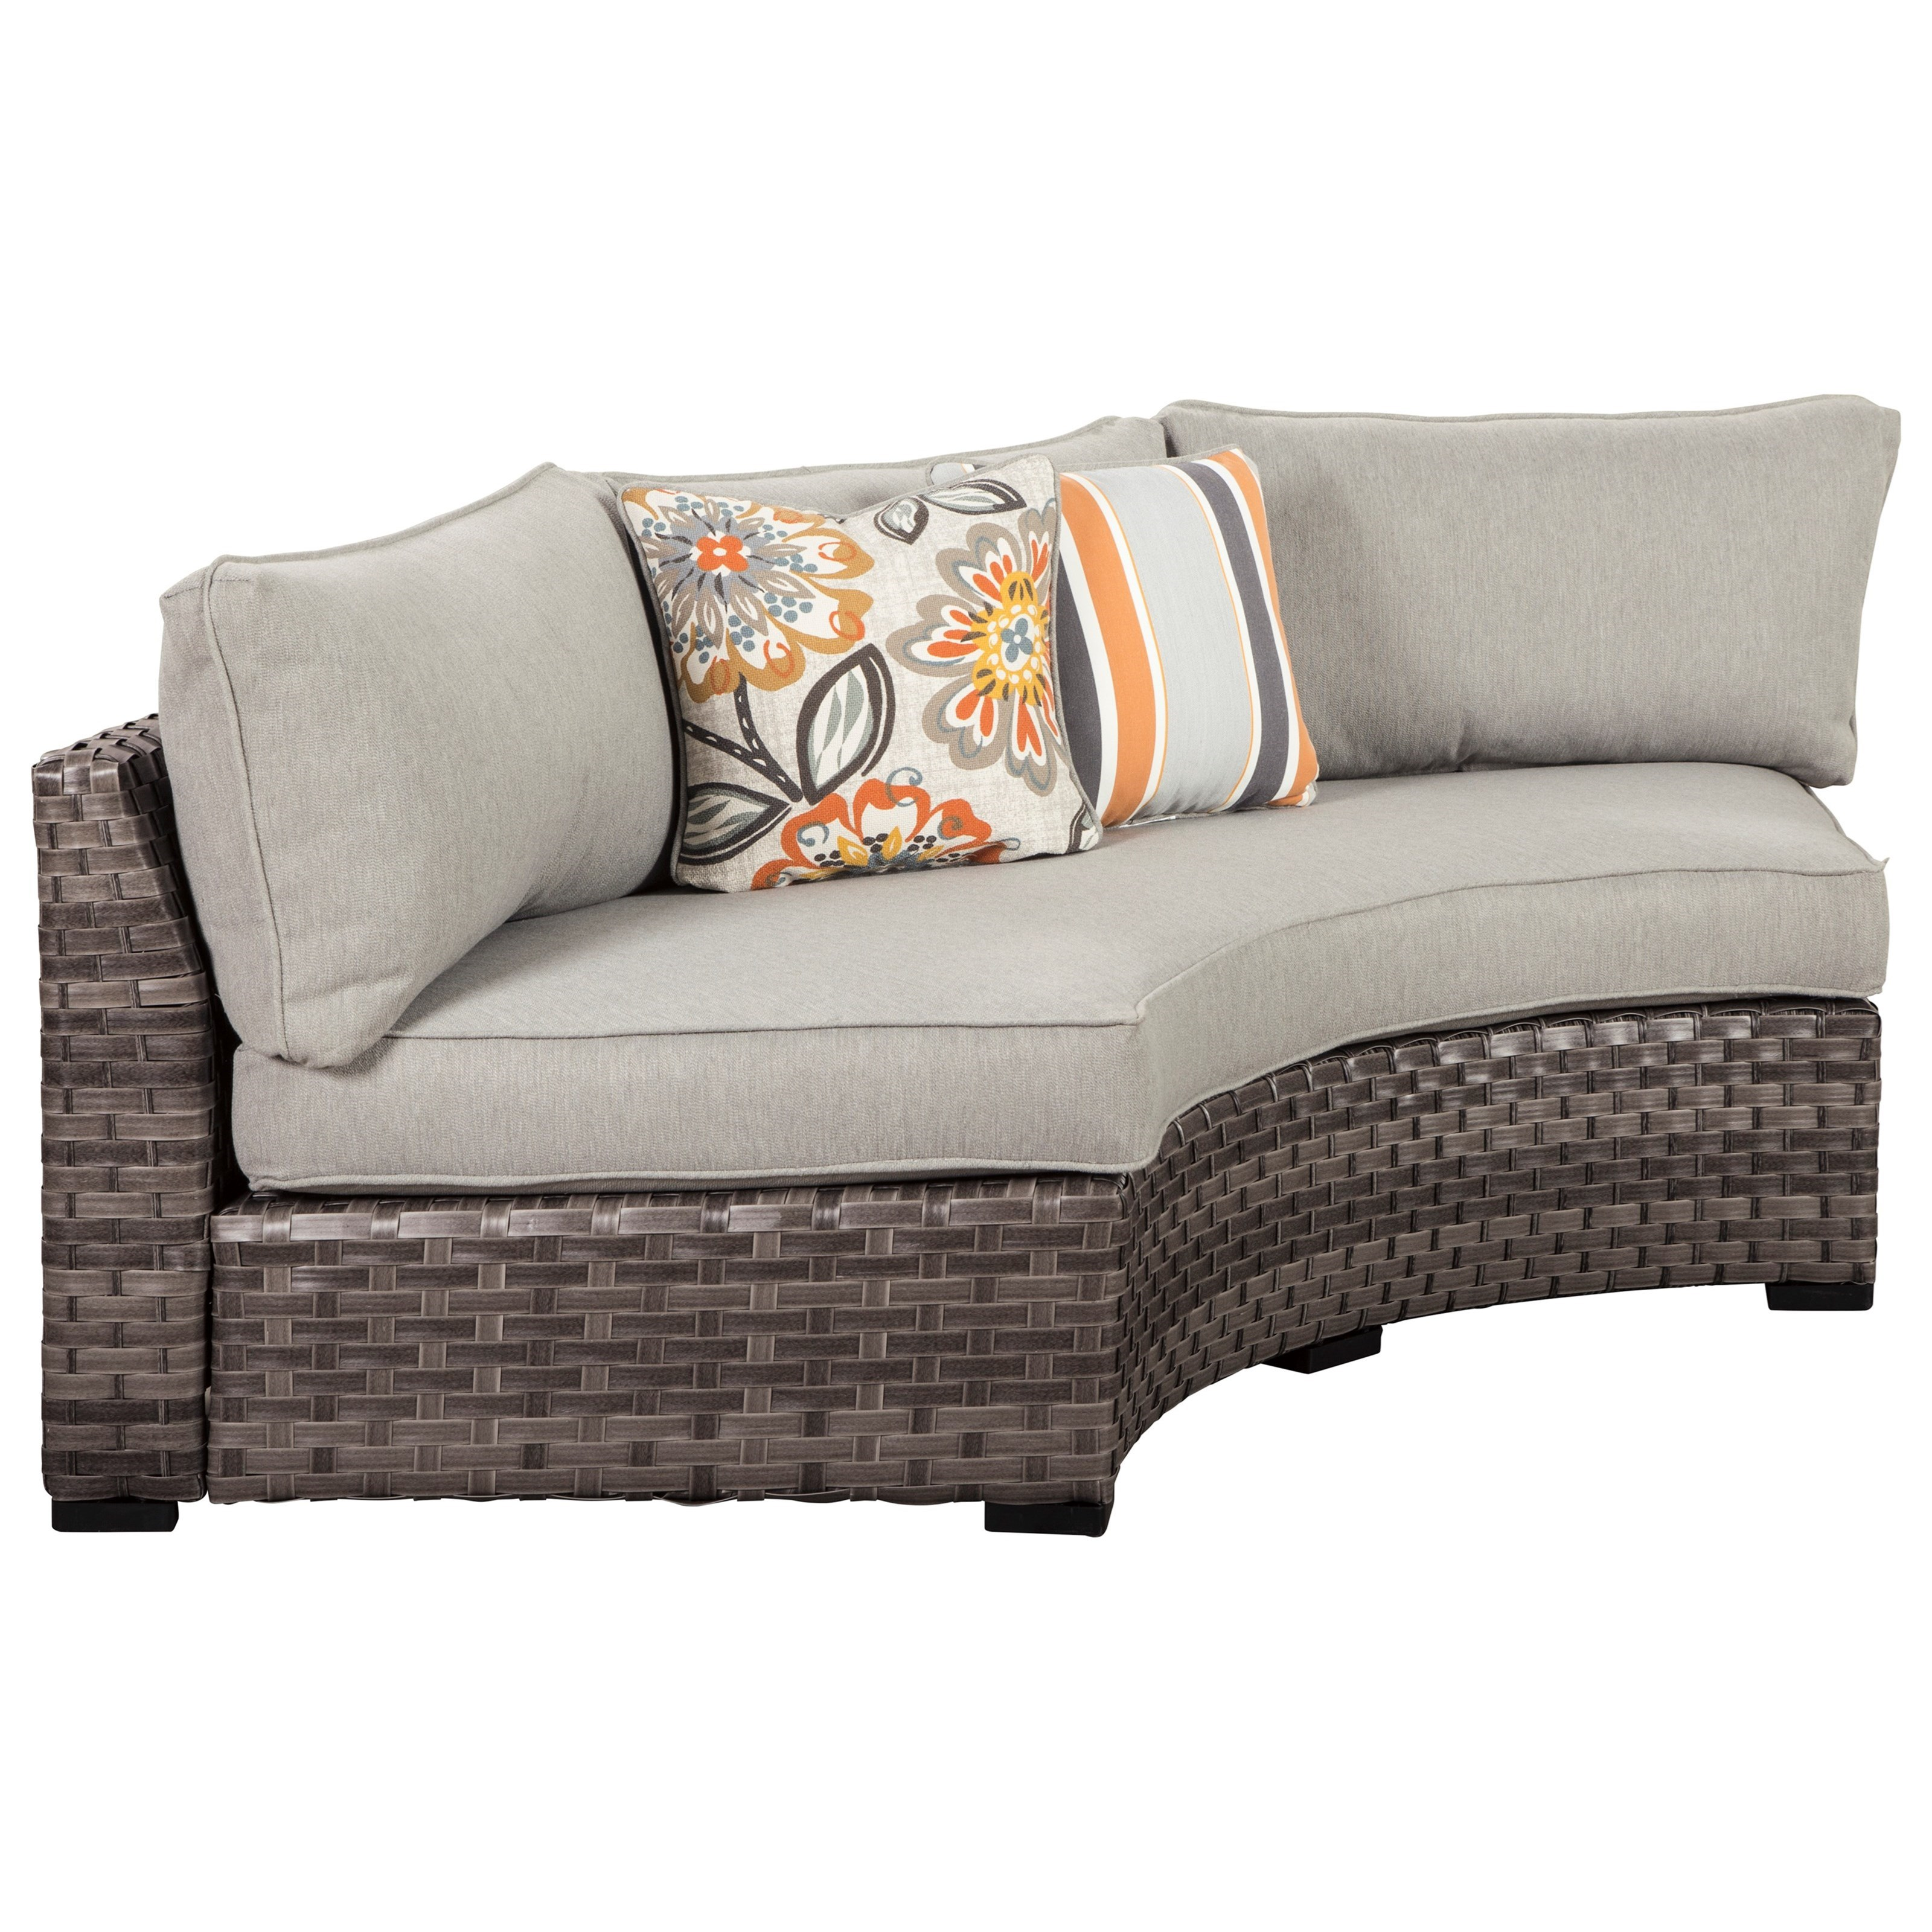 outdoor in storage with sofa cushion cushions berea wicker coast coral loveseat